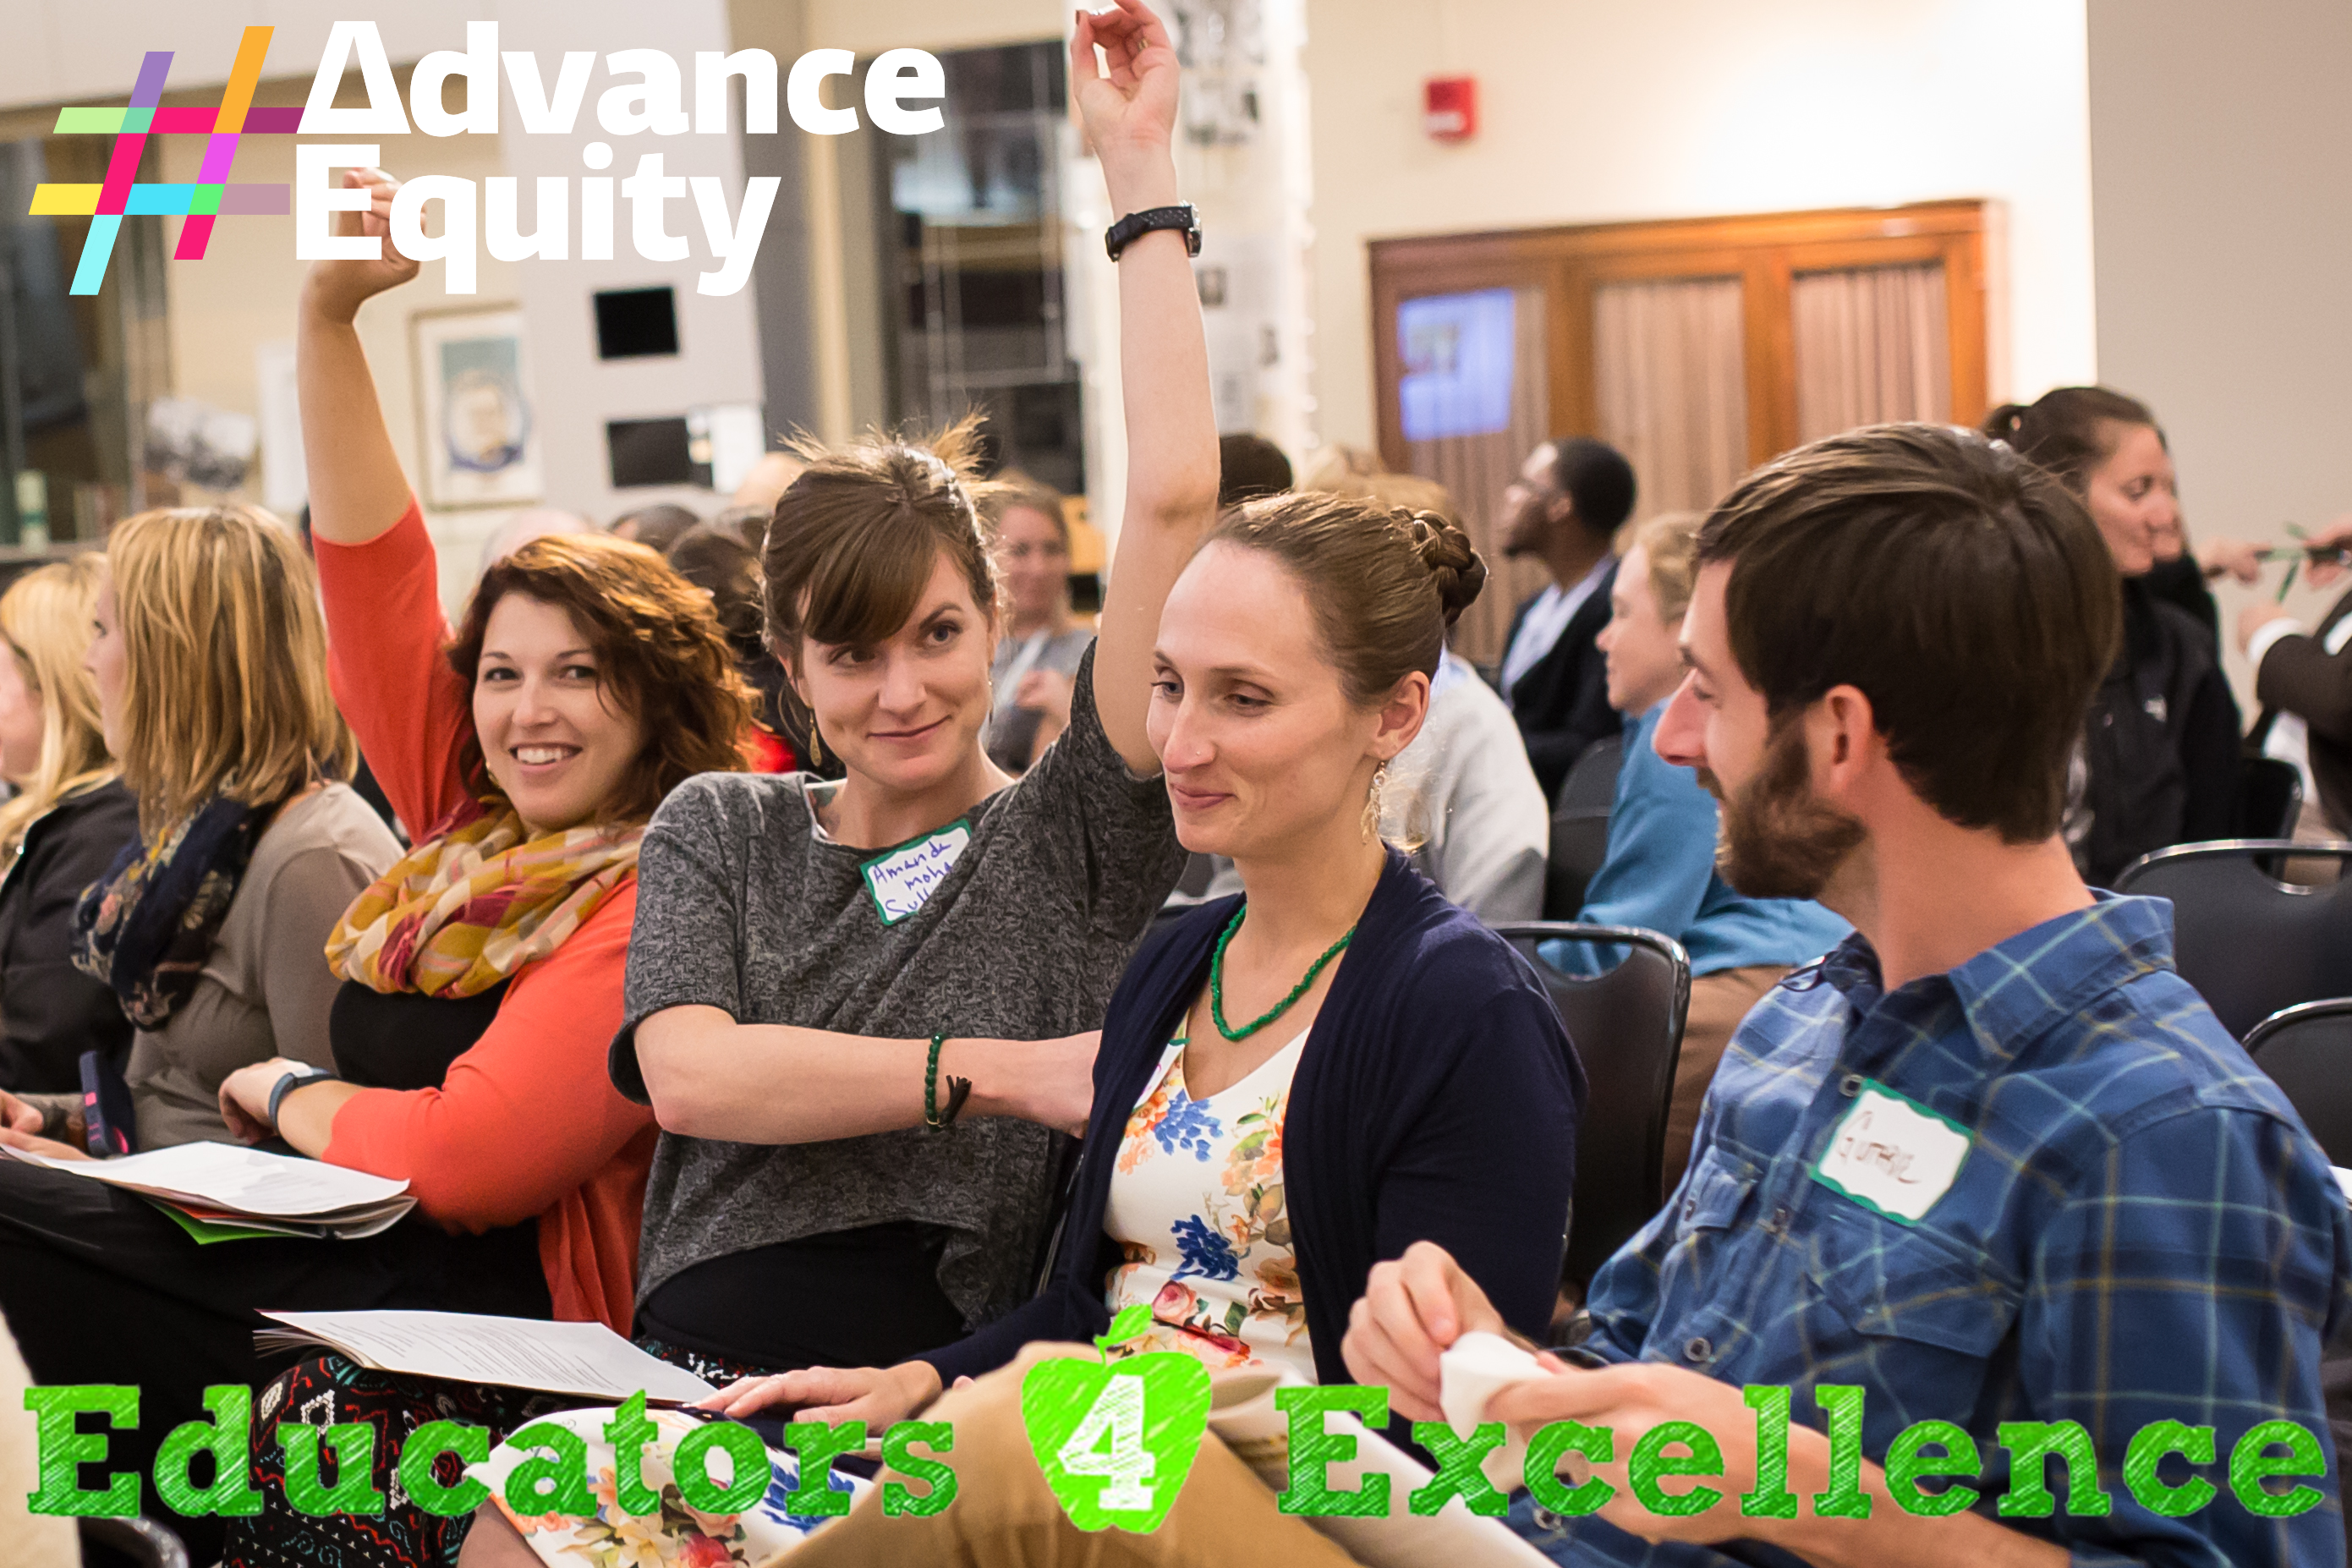 #AdvanceEquity: Spotlight on Educators 4 Excellence